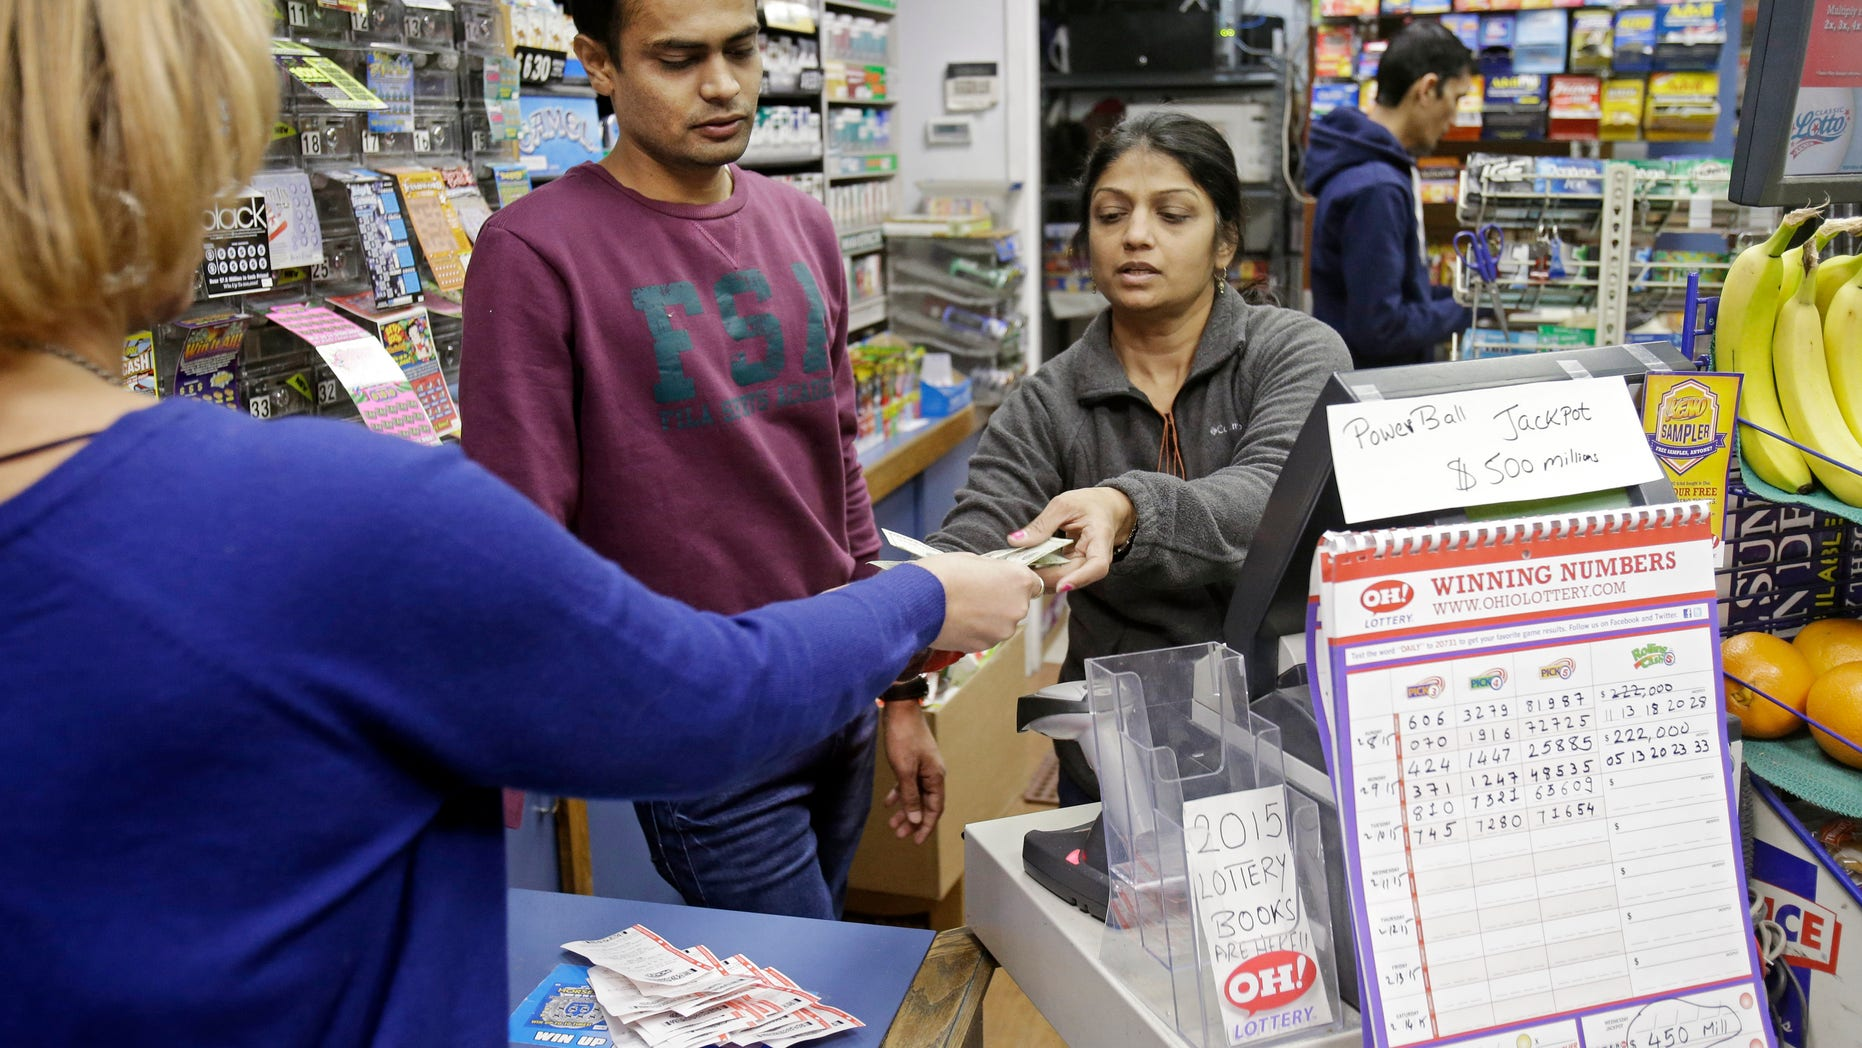 Swati Patel, hands Powerball tickets to a customer as Manish Desai watches at Gateway Newstands in Cleveland Wednesday, Feb. 11, 2015. The Powerball jackpot has climbed to $500 million, making Wednesday night's drawing the fifth largest prize in U.S. history. (AP Photo/Mark Duncan)